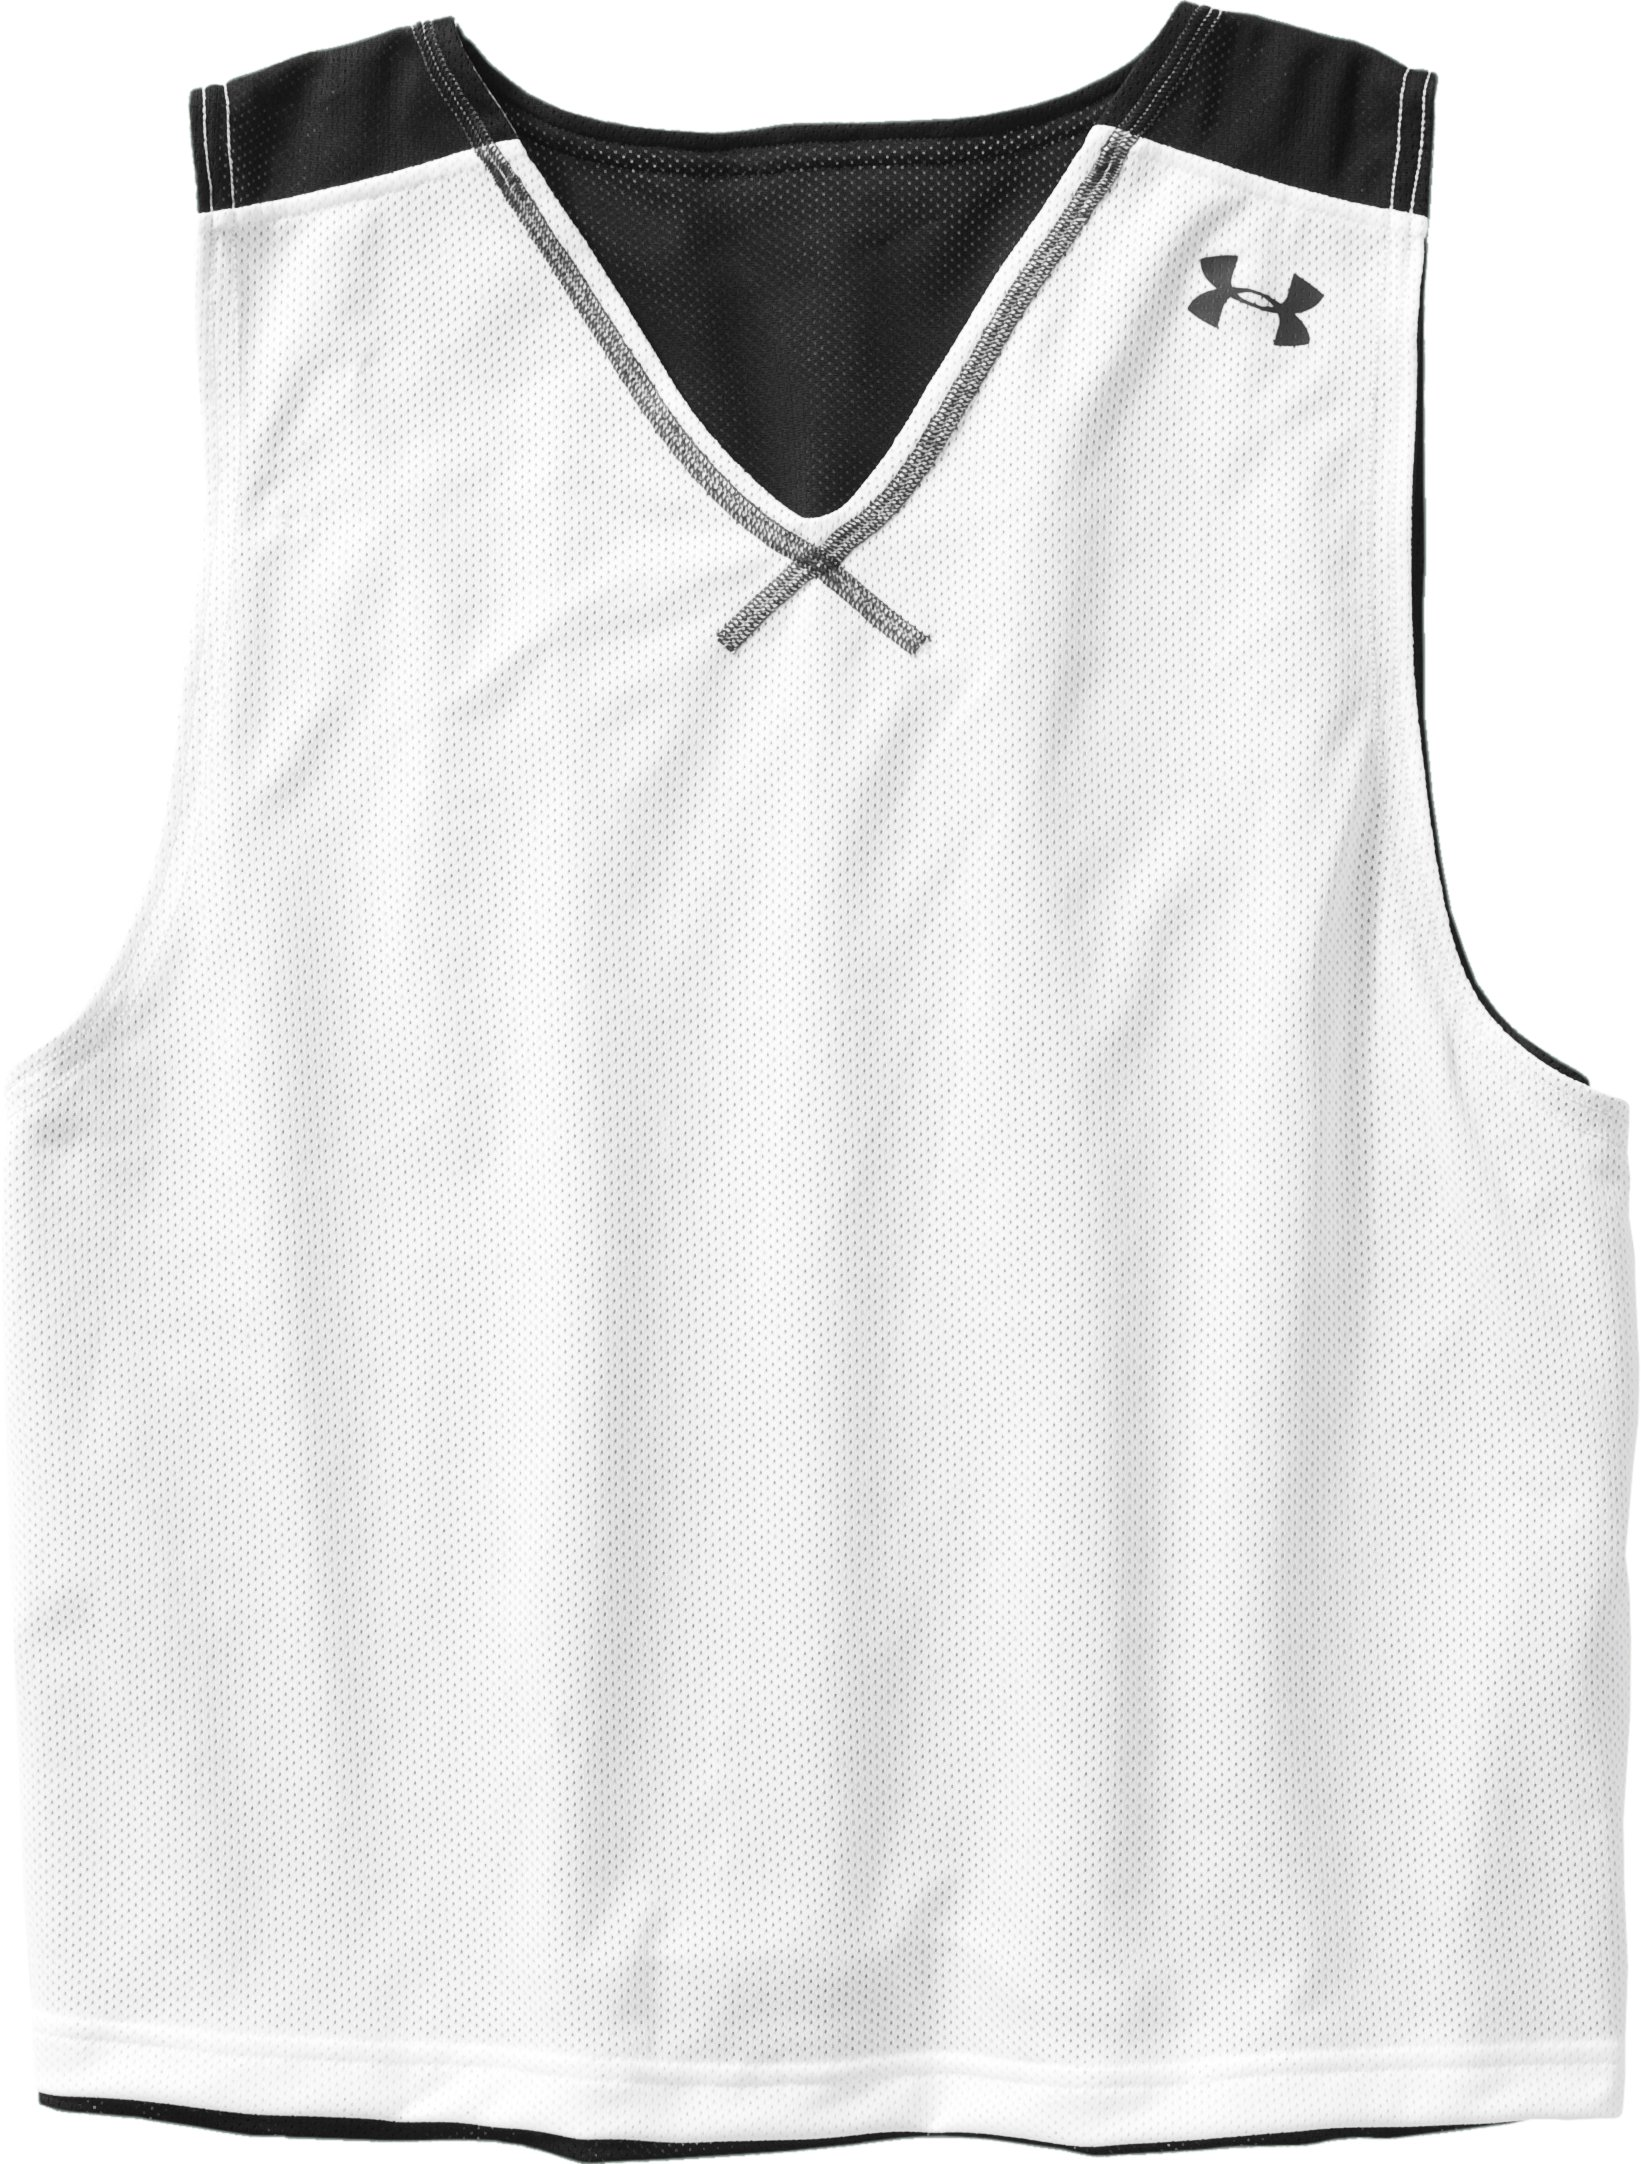 Men's Practice Jersey, Black , undefined